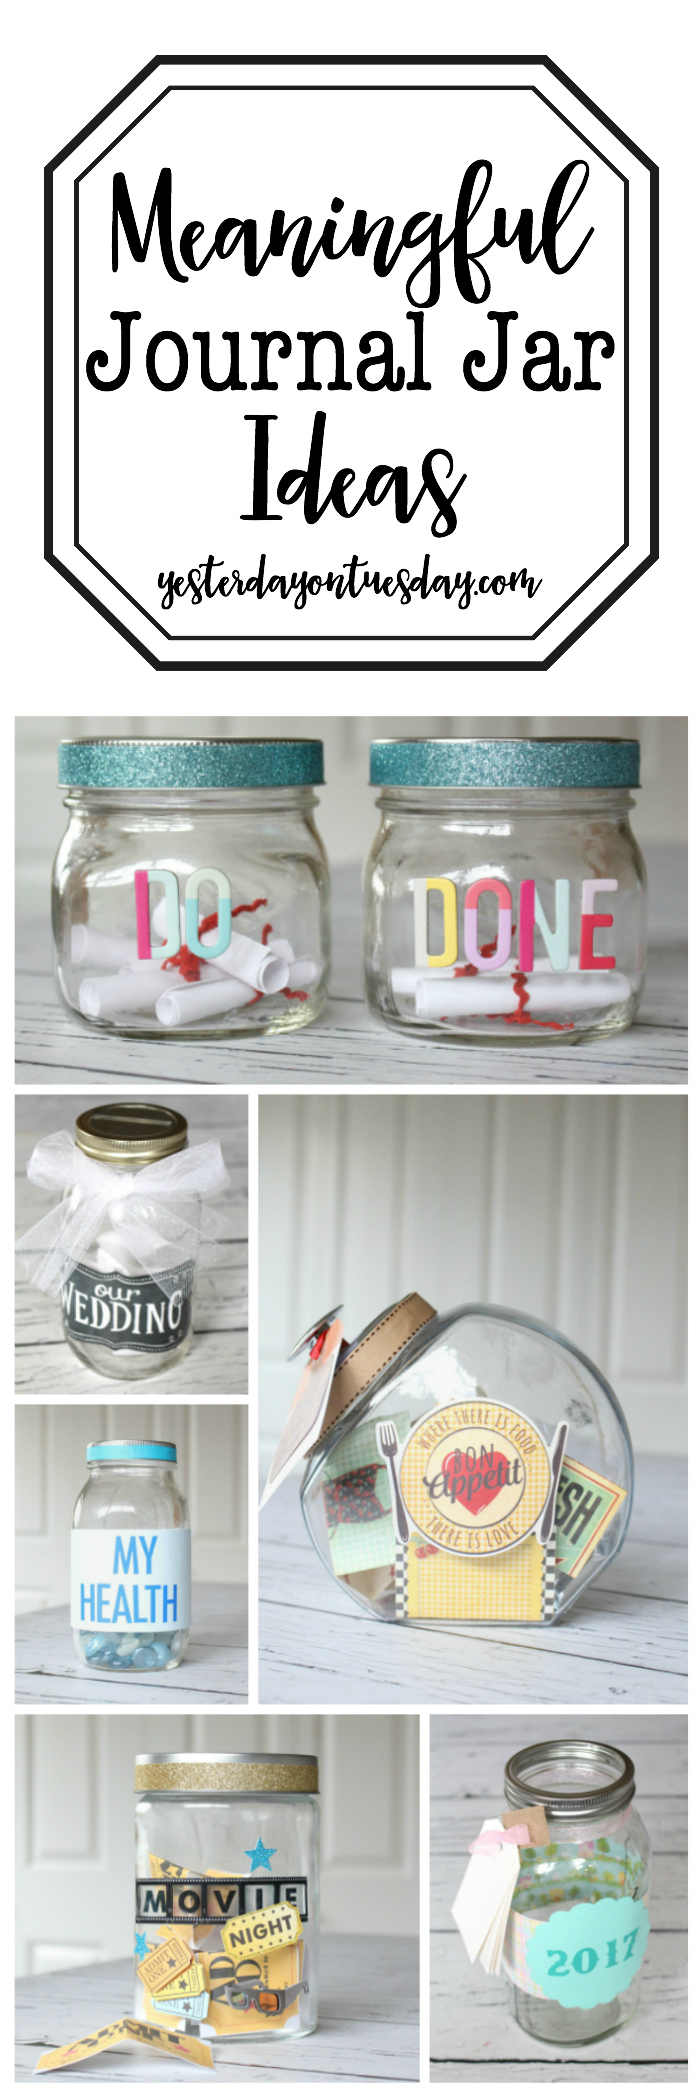 7 Meaningful Journal Jar Ideas Yesterday On Tuesday